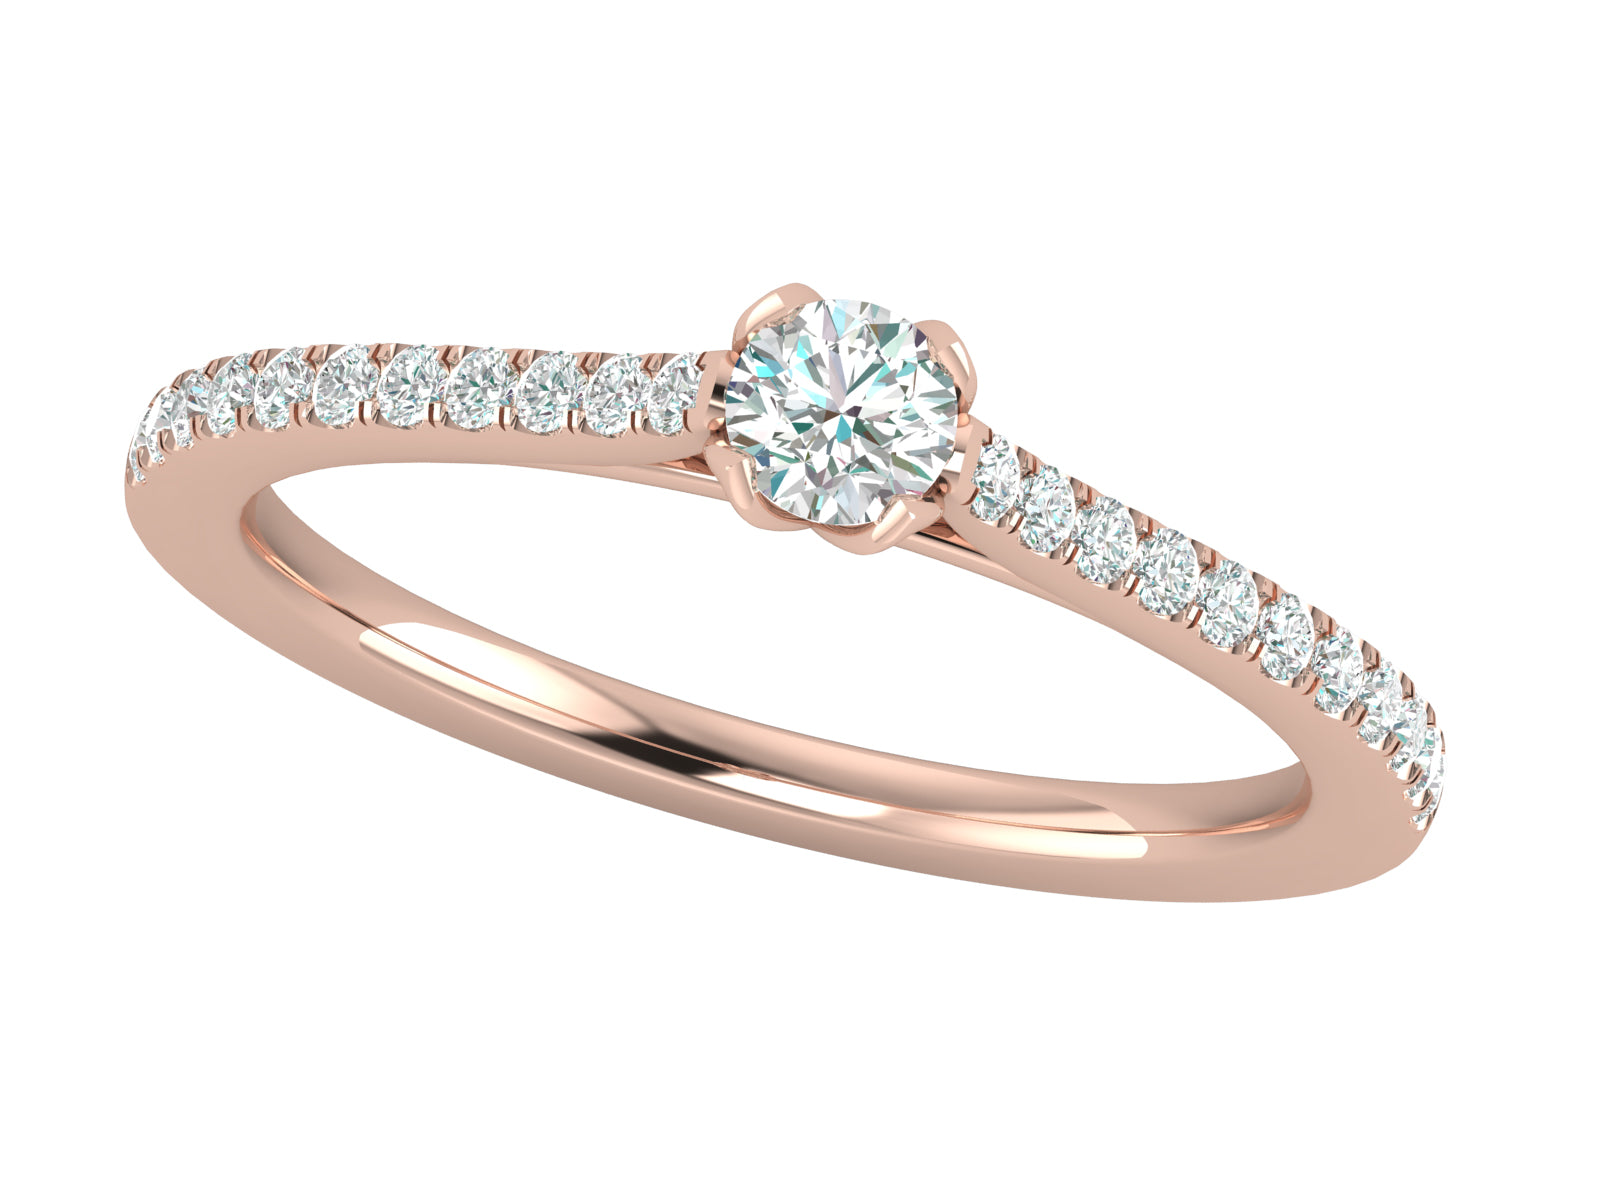 Carino - Solitaire Engagement Ring